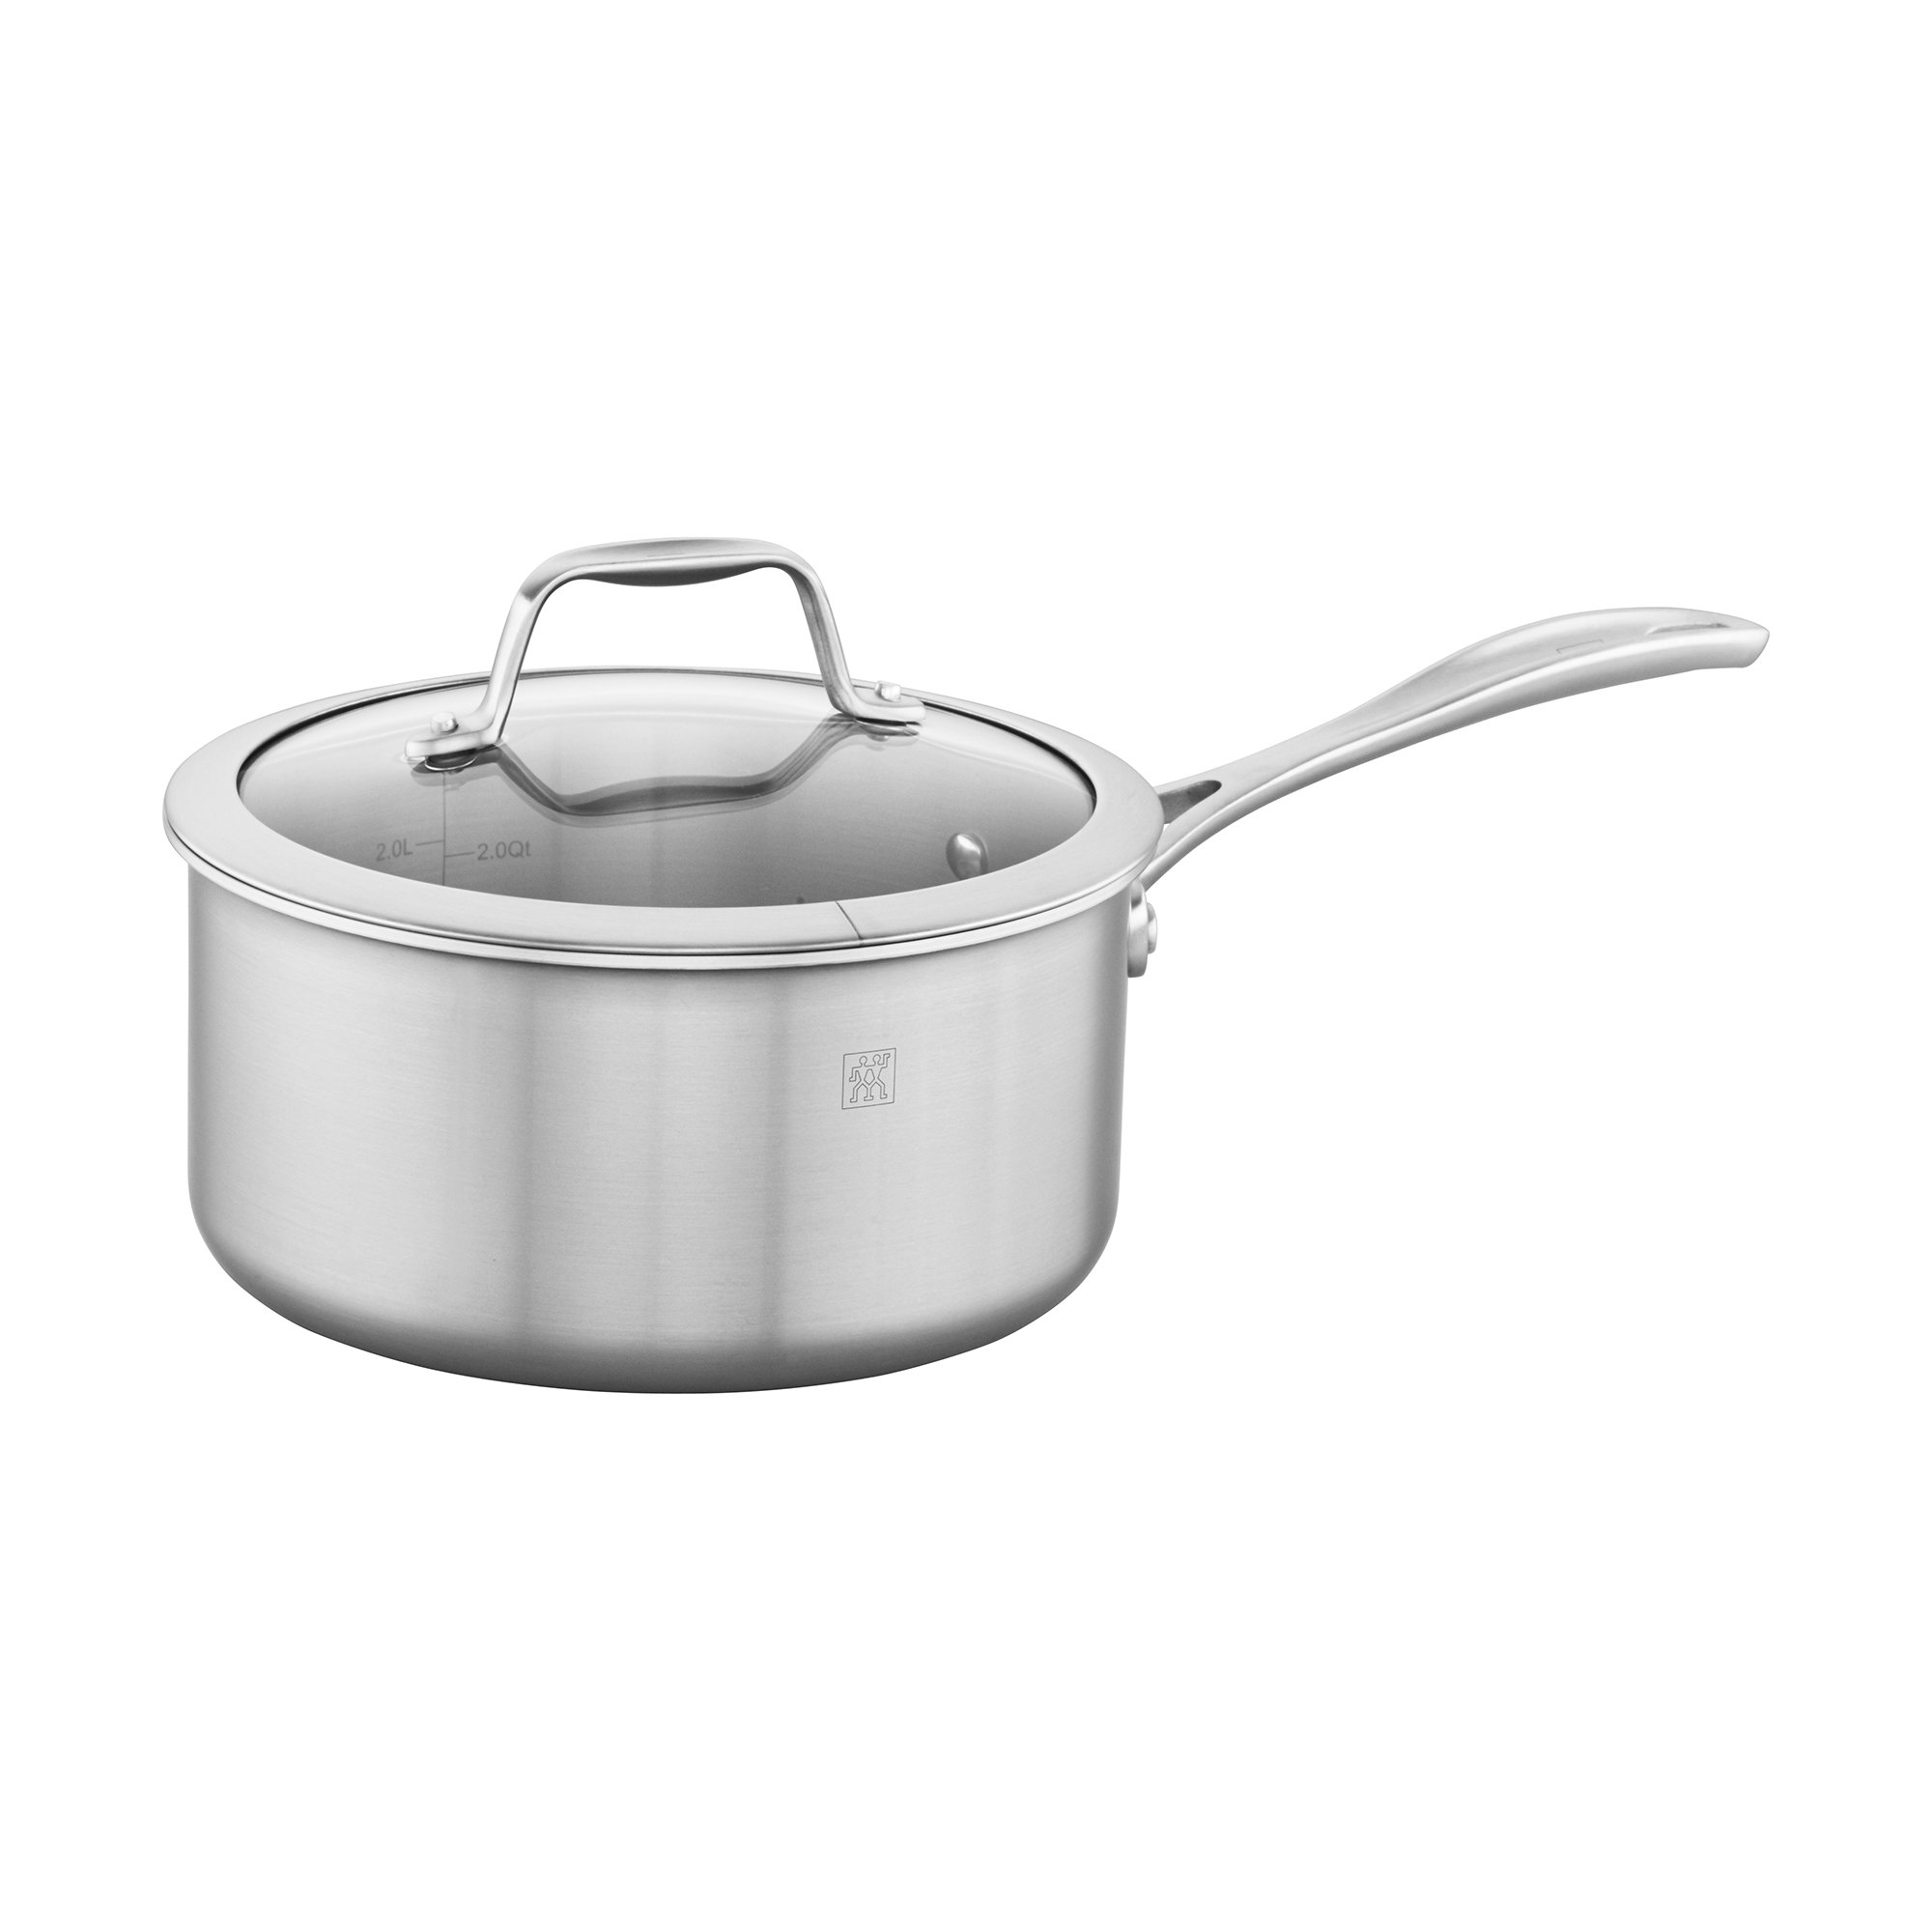 ZWILLING Spirit 3-ply 3-qt Stainless Steel Saucepan